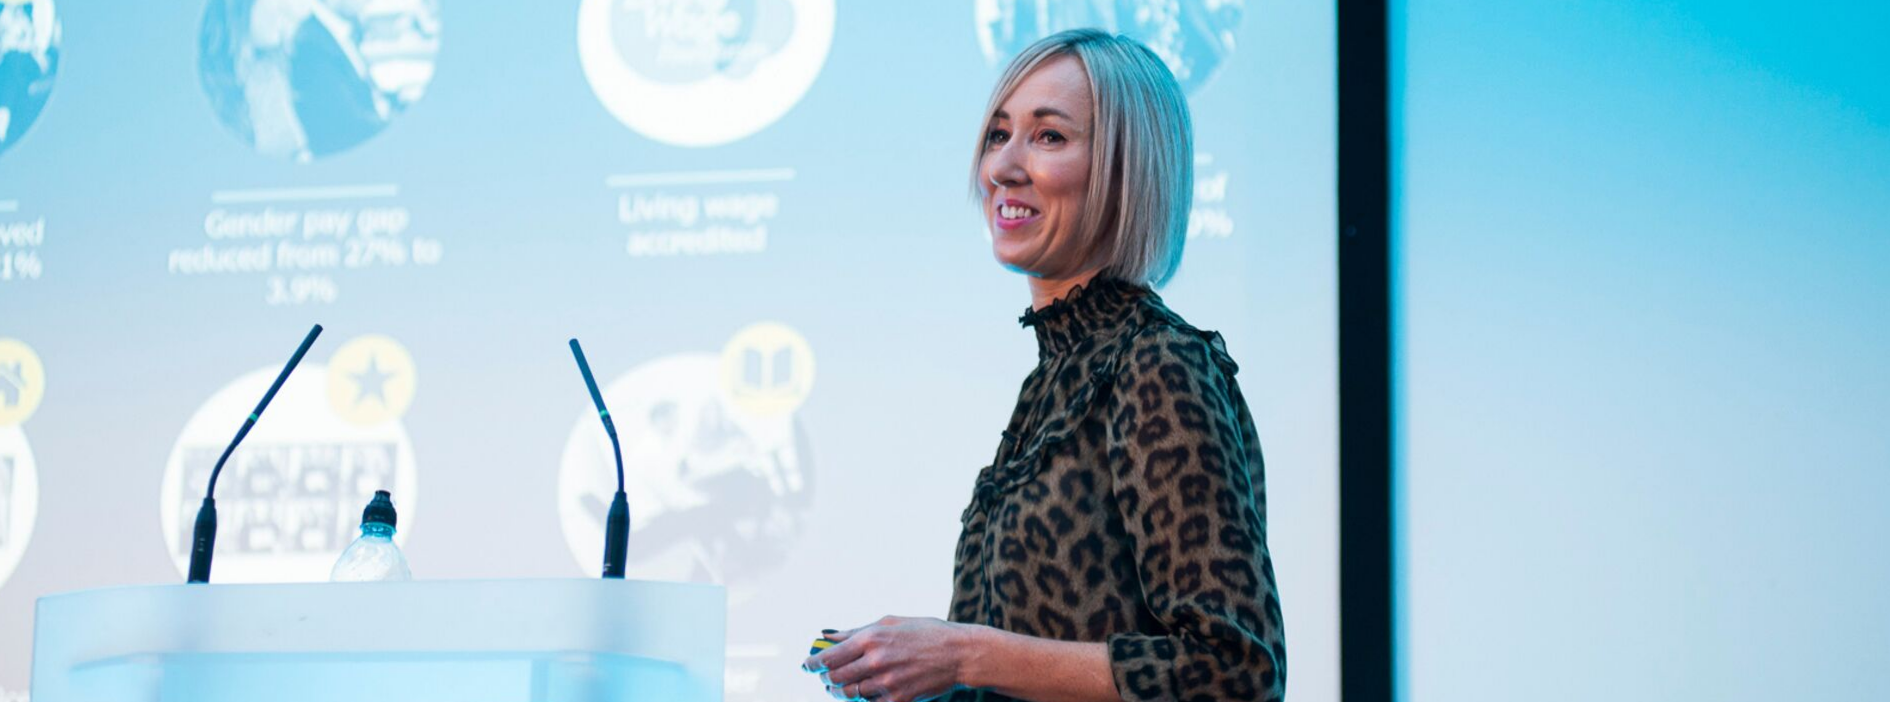 Claire Marsh, CEO of Lorien, writes on being named on the 2019 SIA Top 100 European Influencers list